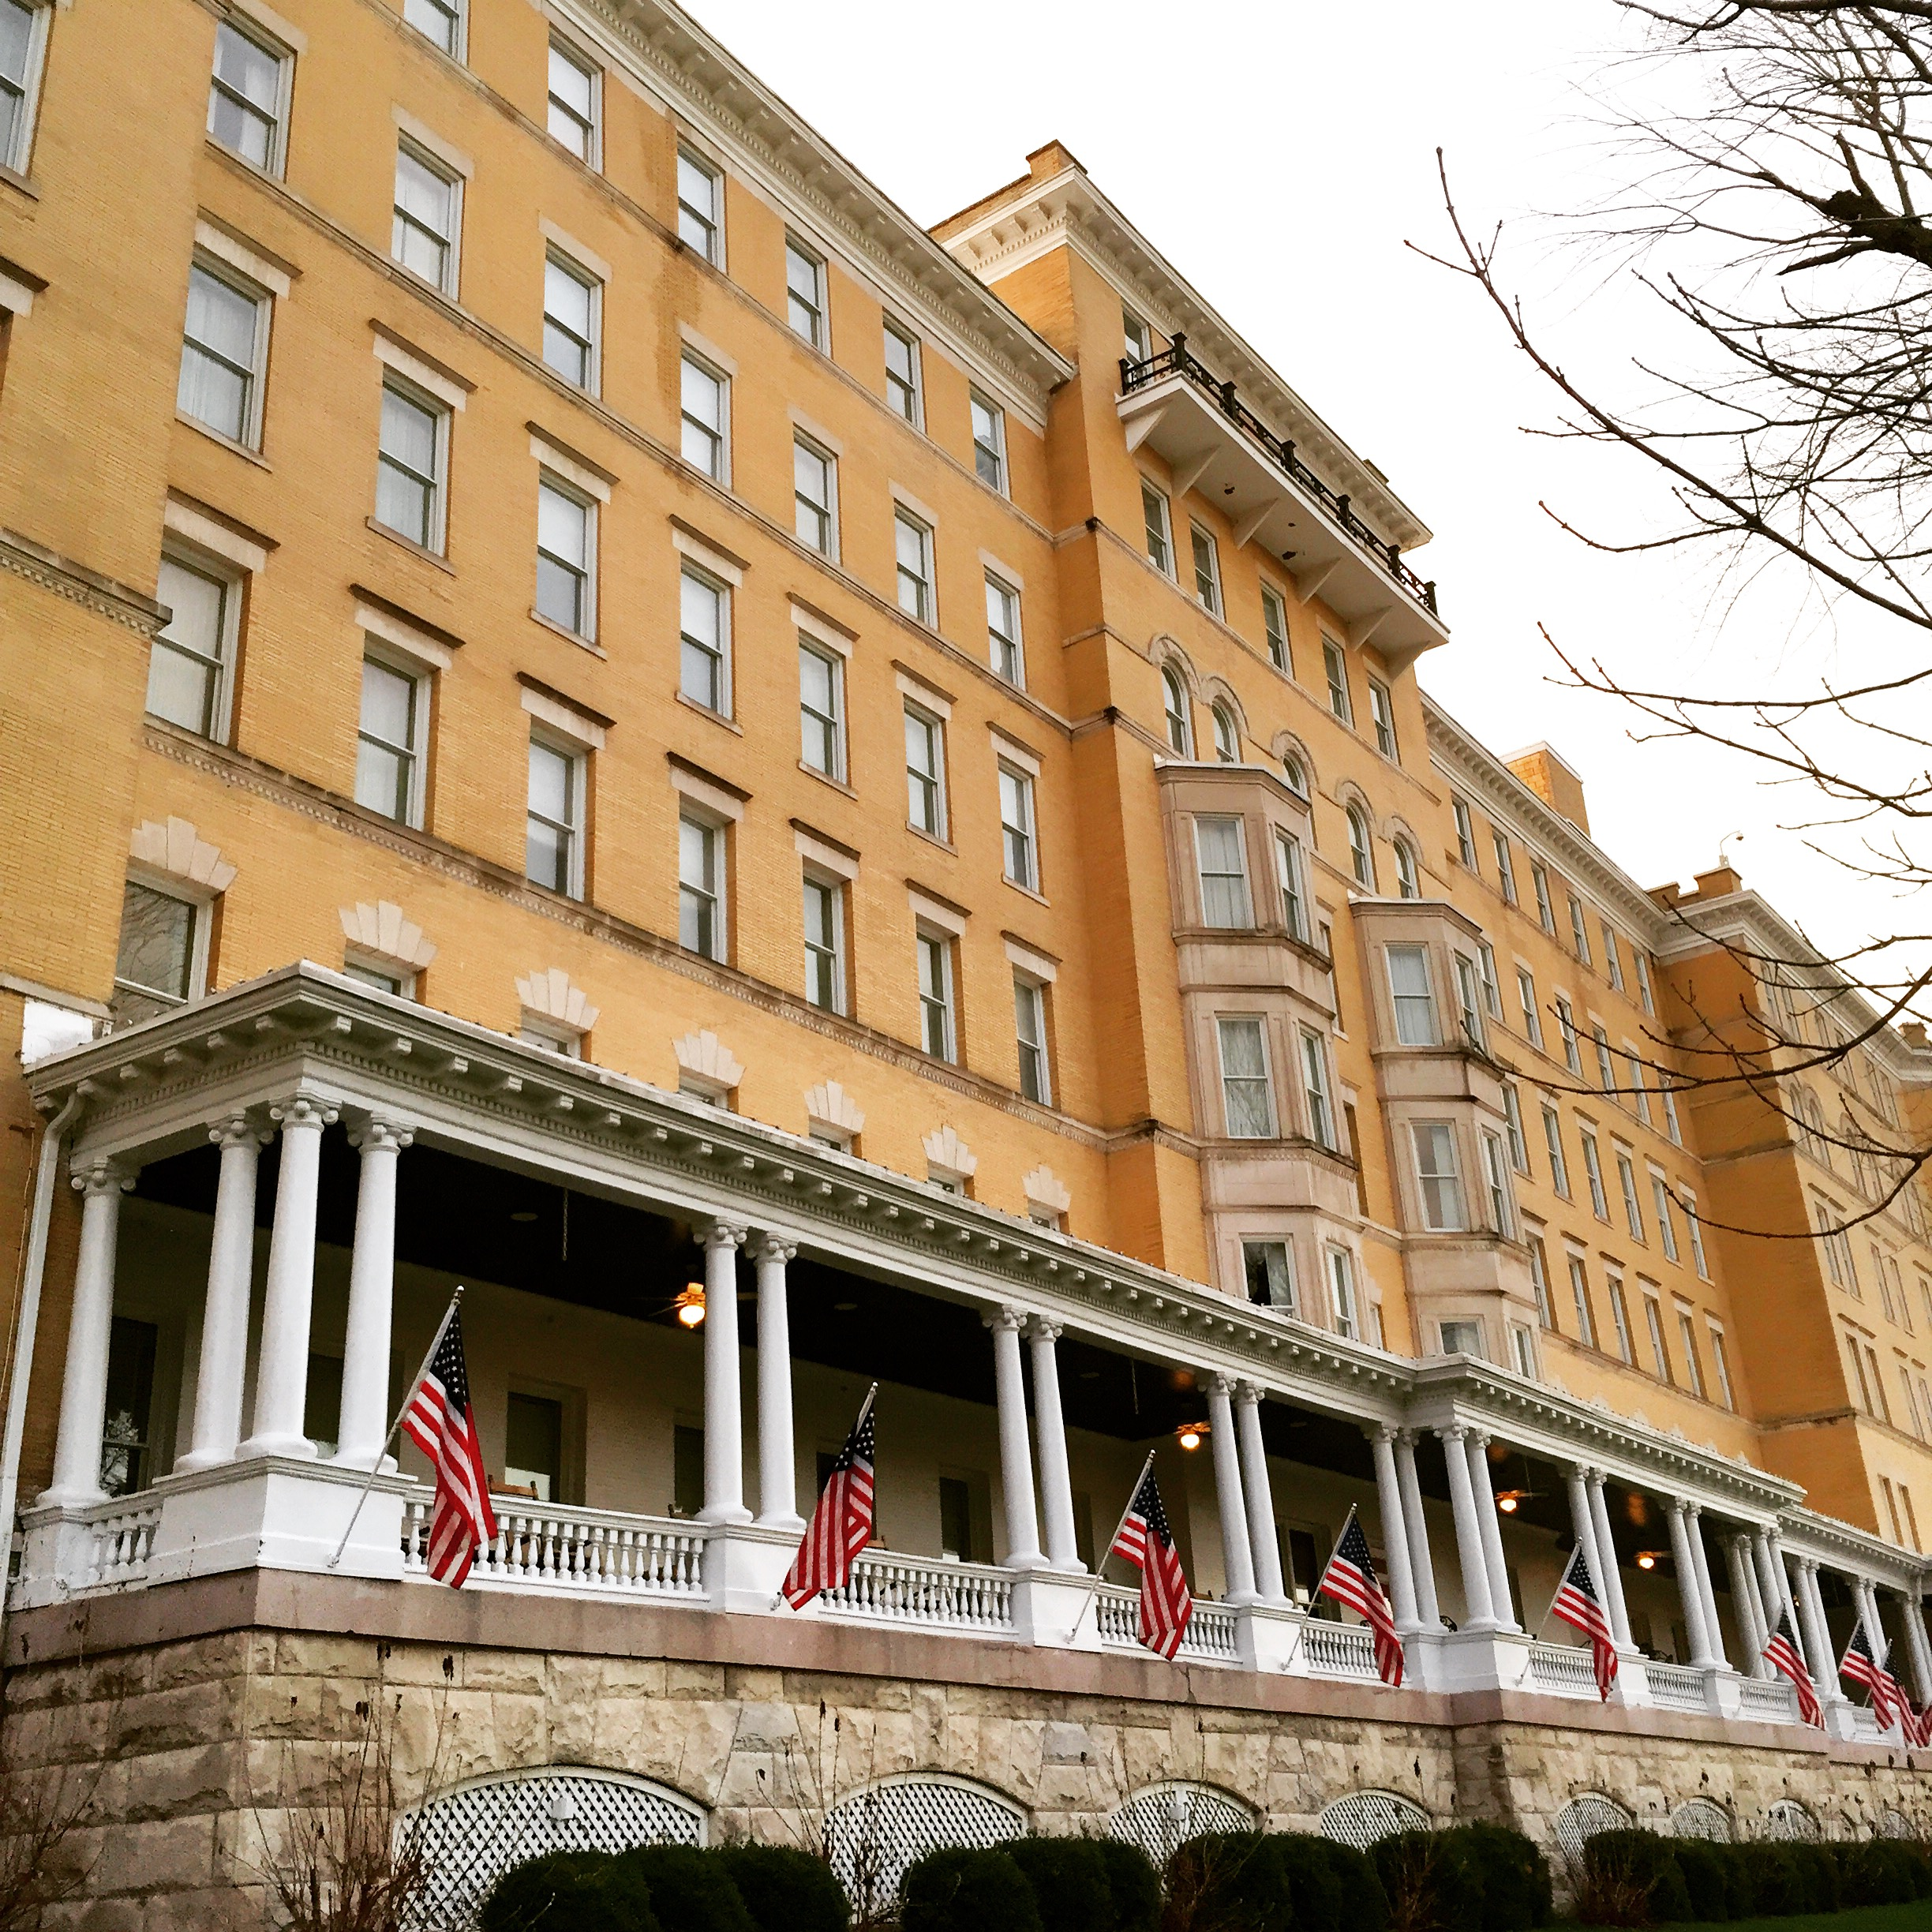 French Lick Springs Hotel | French Lick Resort | Indiana